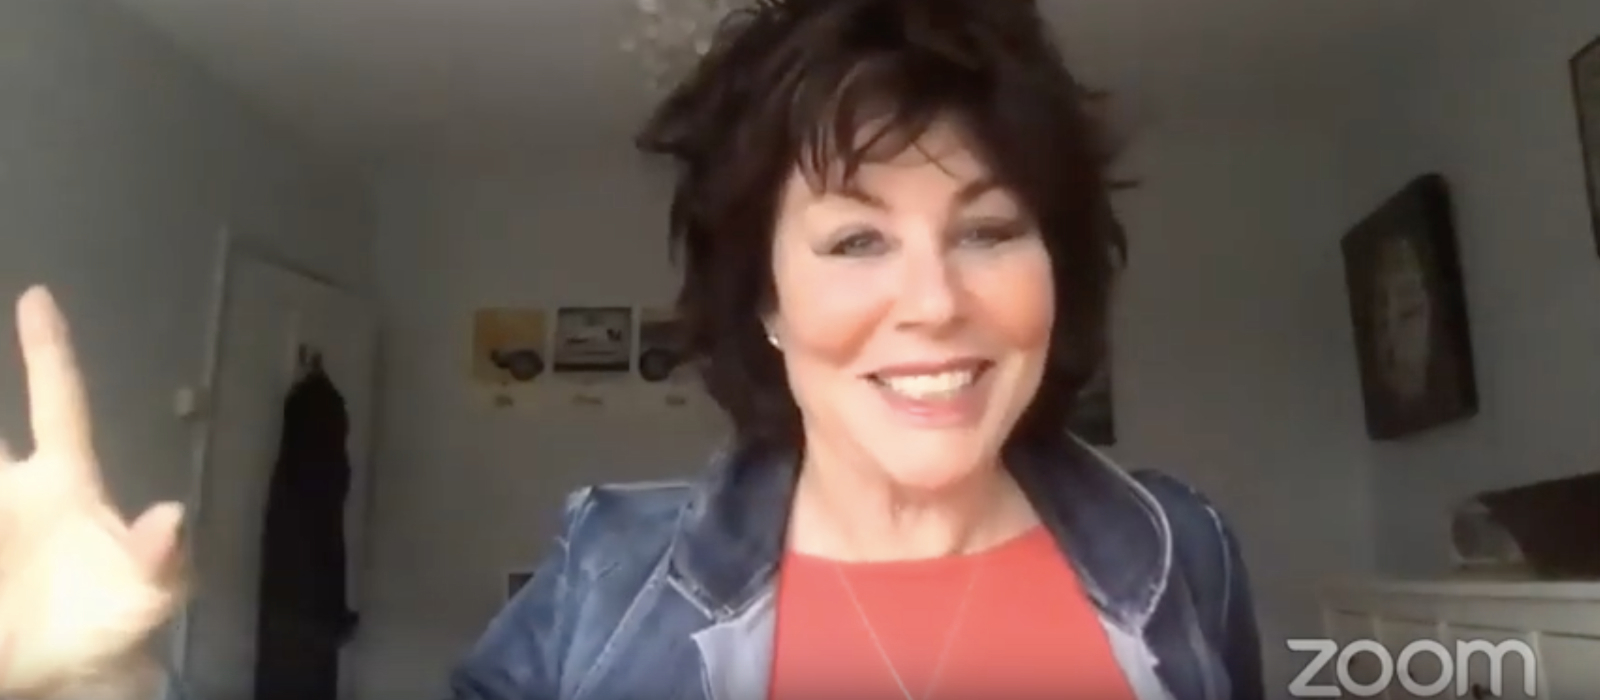 'Time to Evolve': Ruby Wax and Jamie Bristow chat on new Healthflix platform